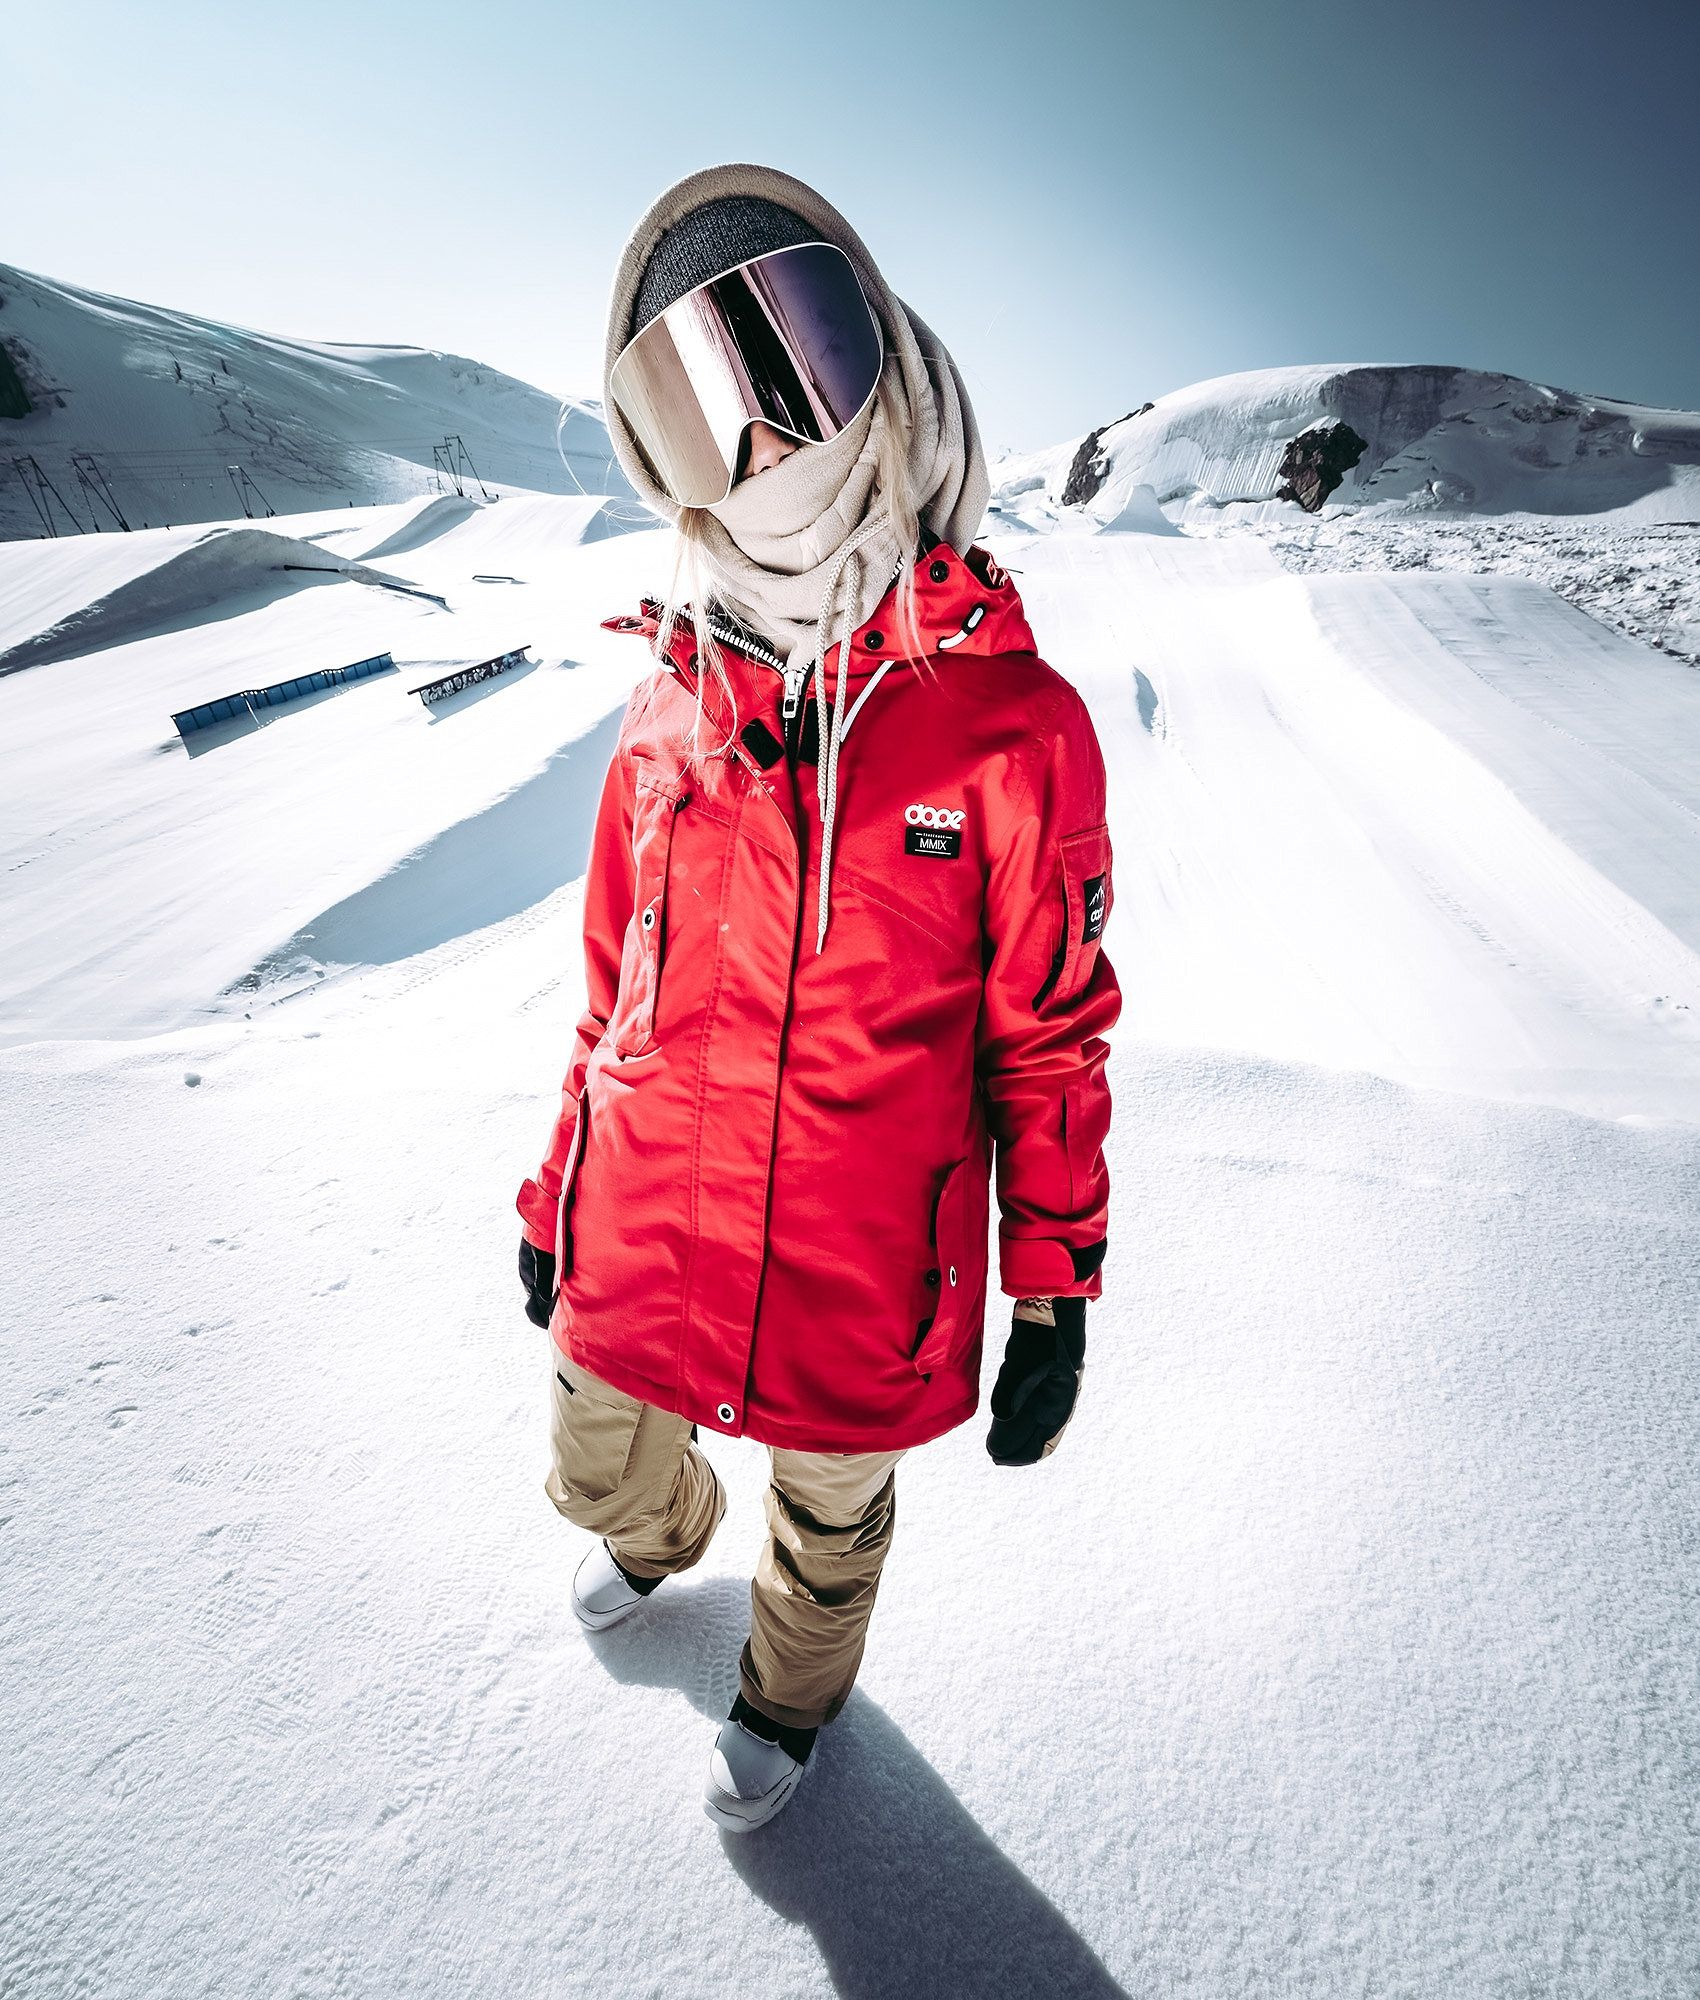 snowboarding gear womens snowboard outfit 02418cd98